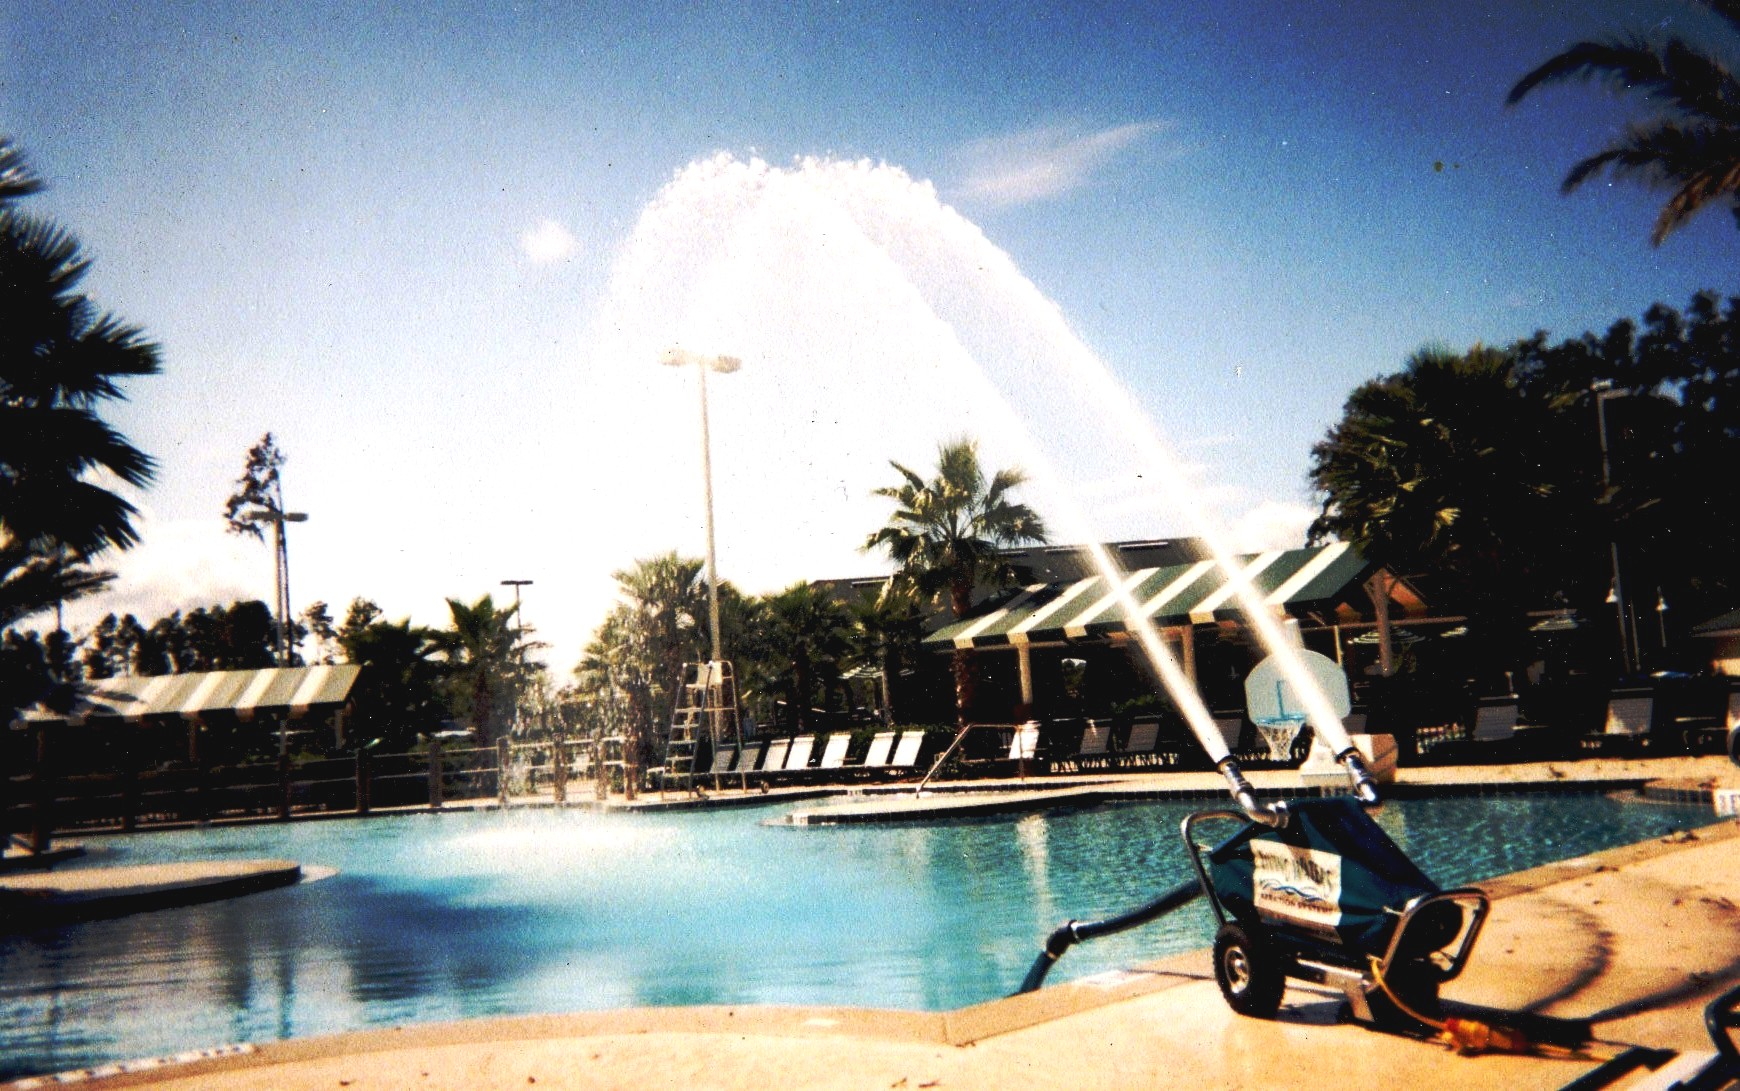 The Watercannon swimming pool aeration system